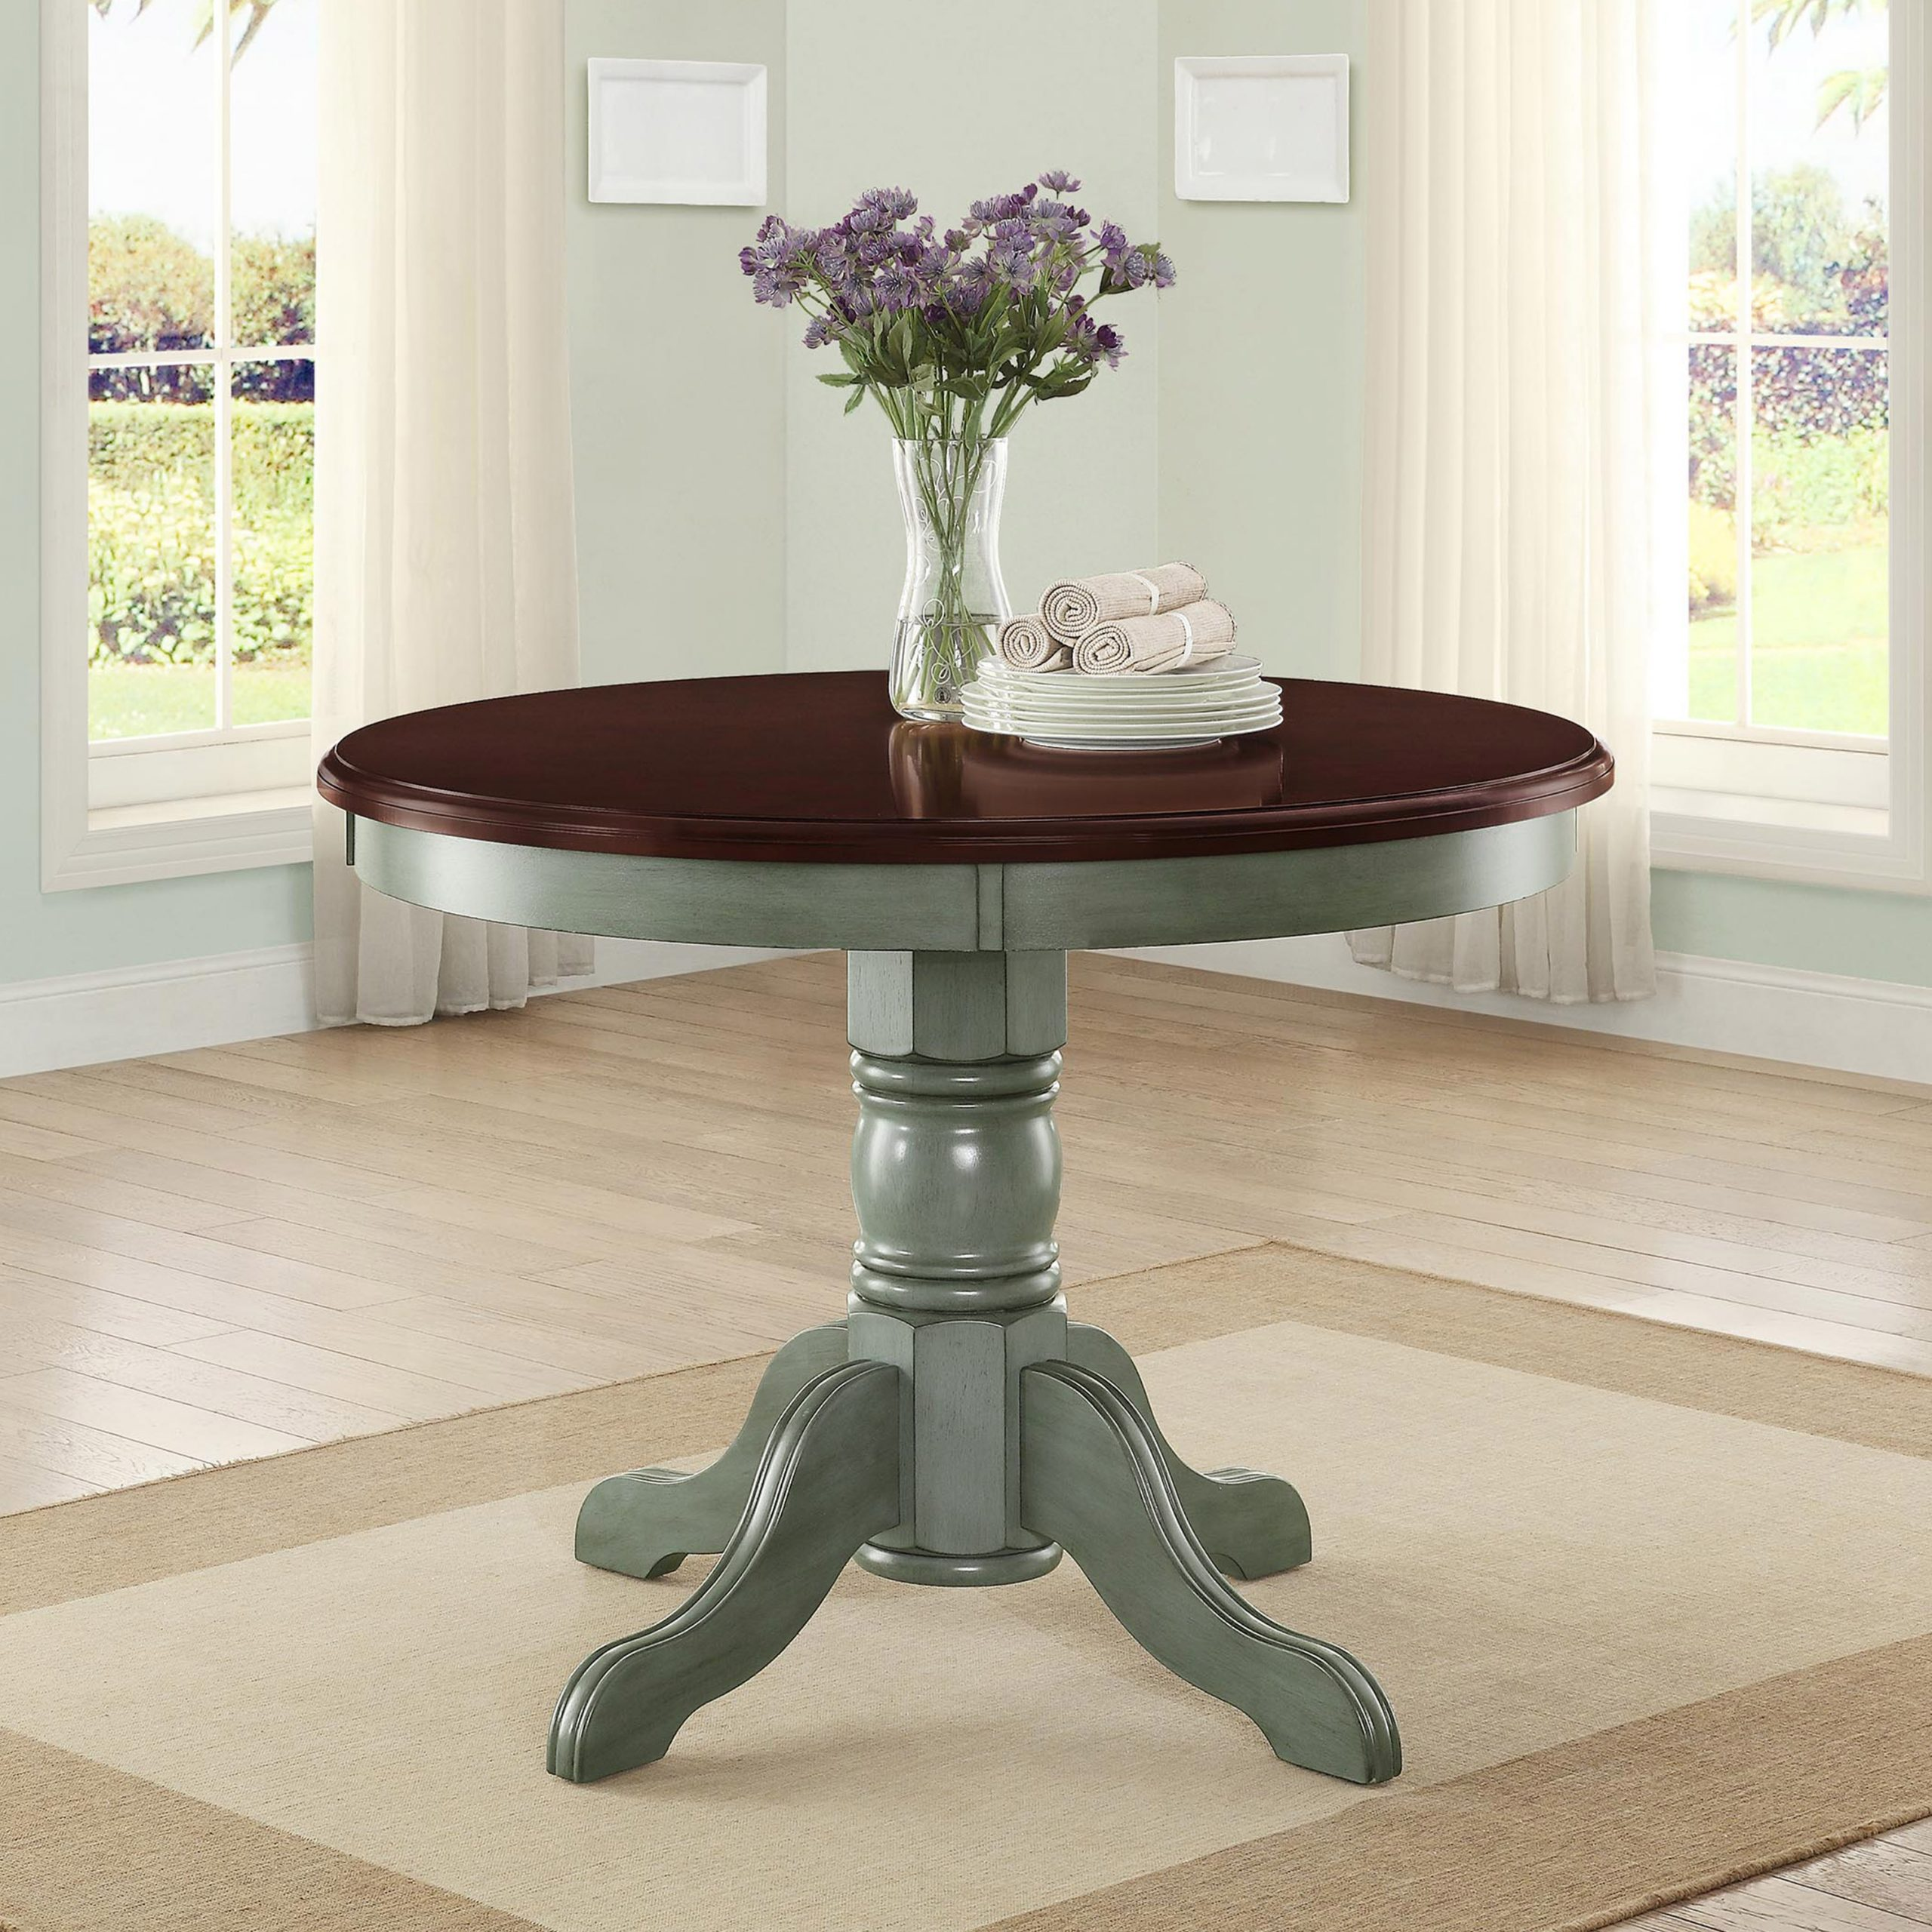 Most Recent Transitional 4 Seating Square Casual Dining Tables Pertaining To Better Homes And Gardens Cambridge Place Dining Table (View 11 of 25)